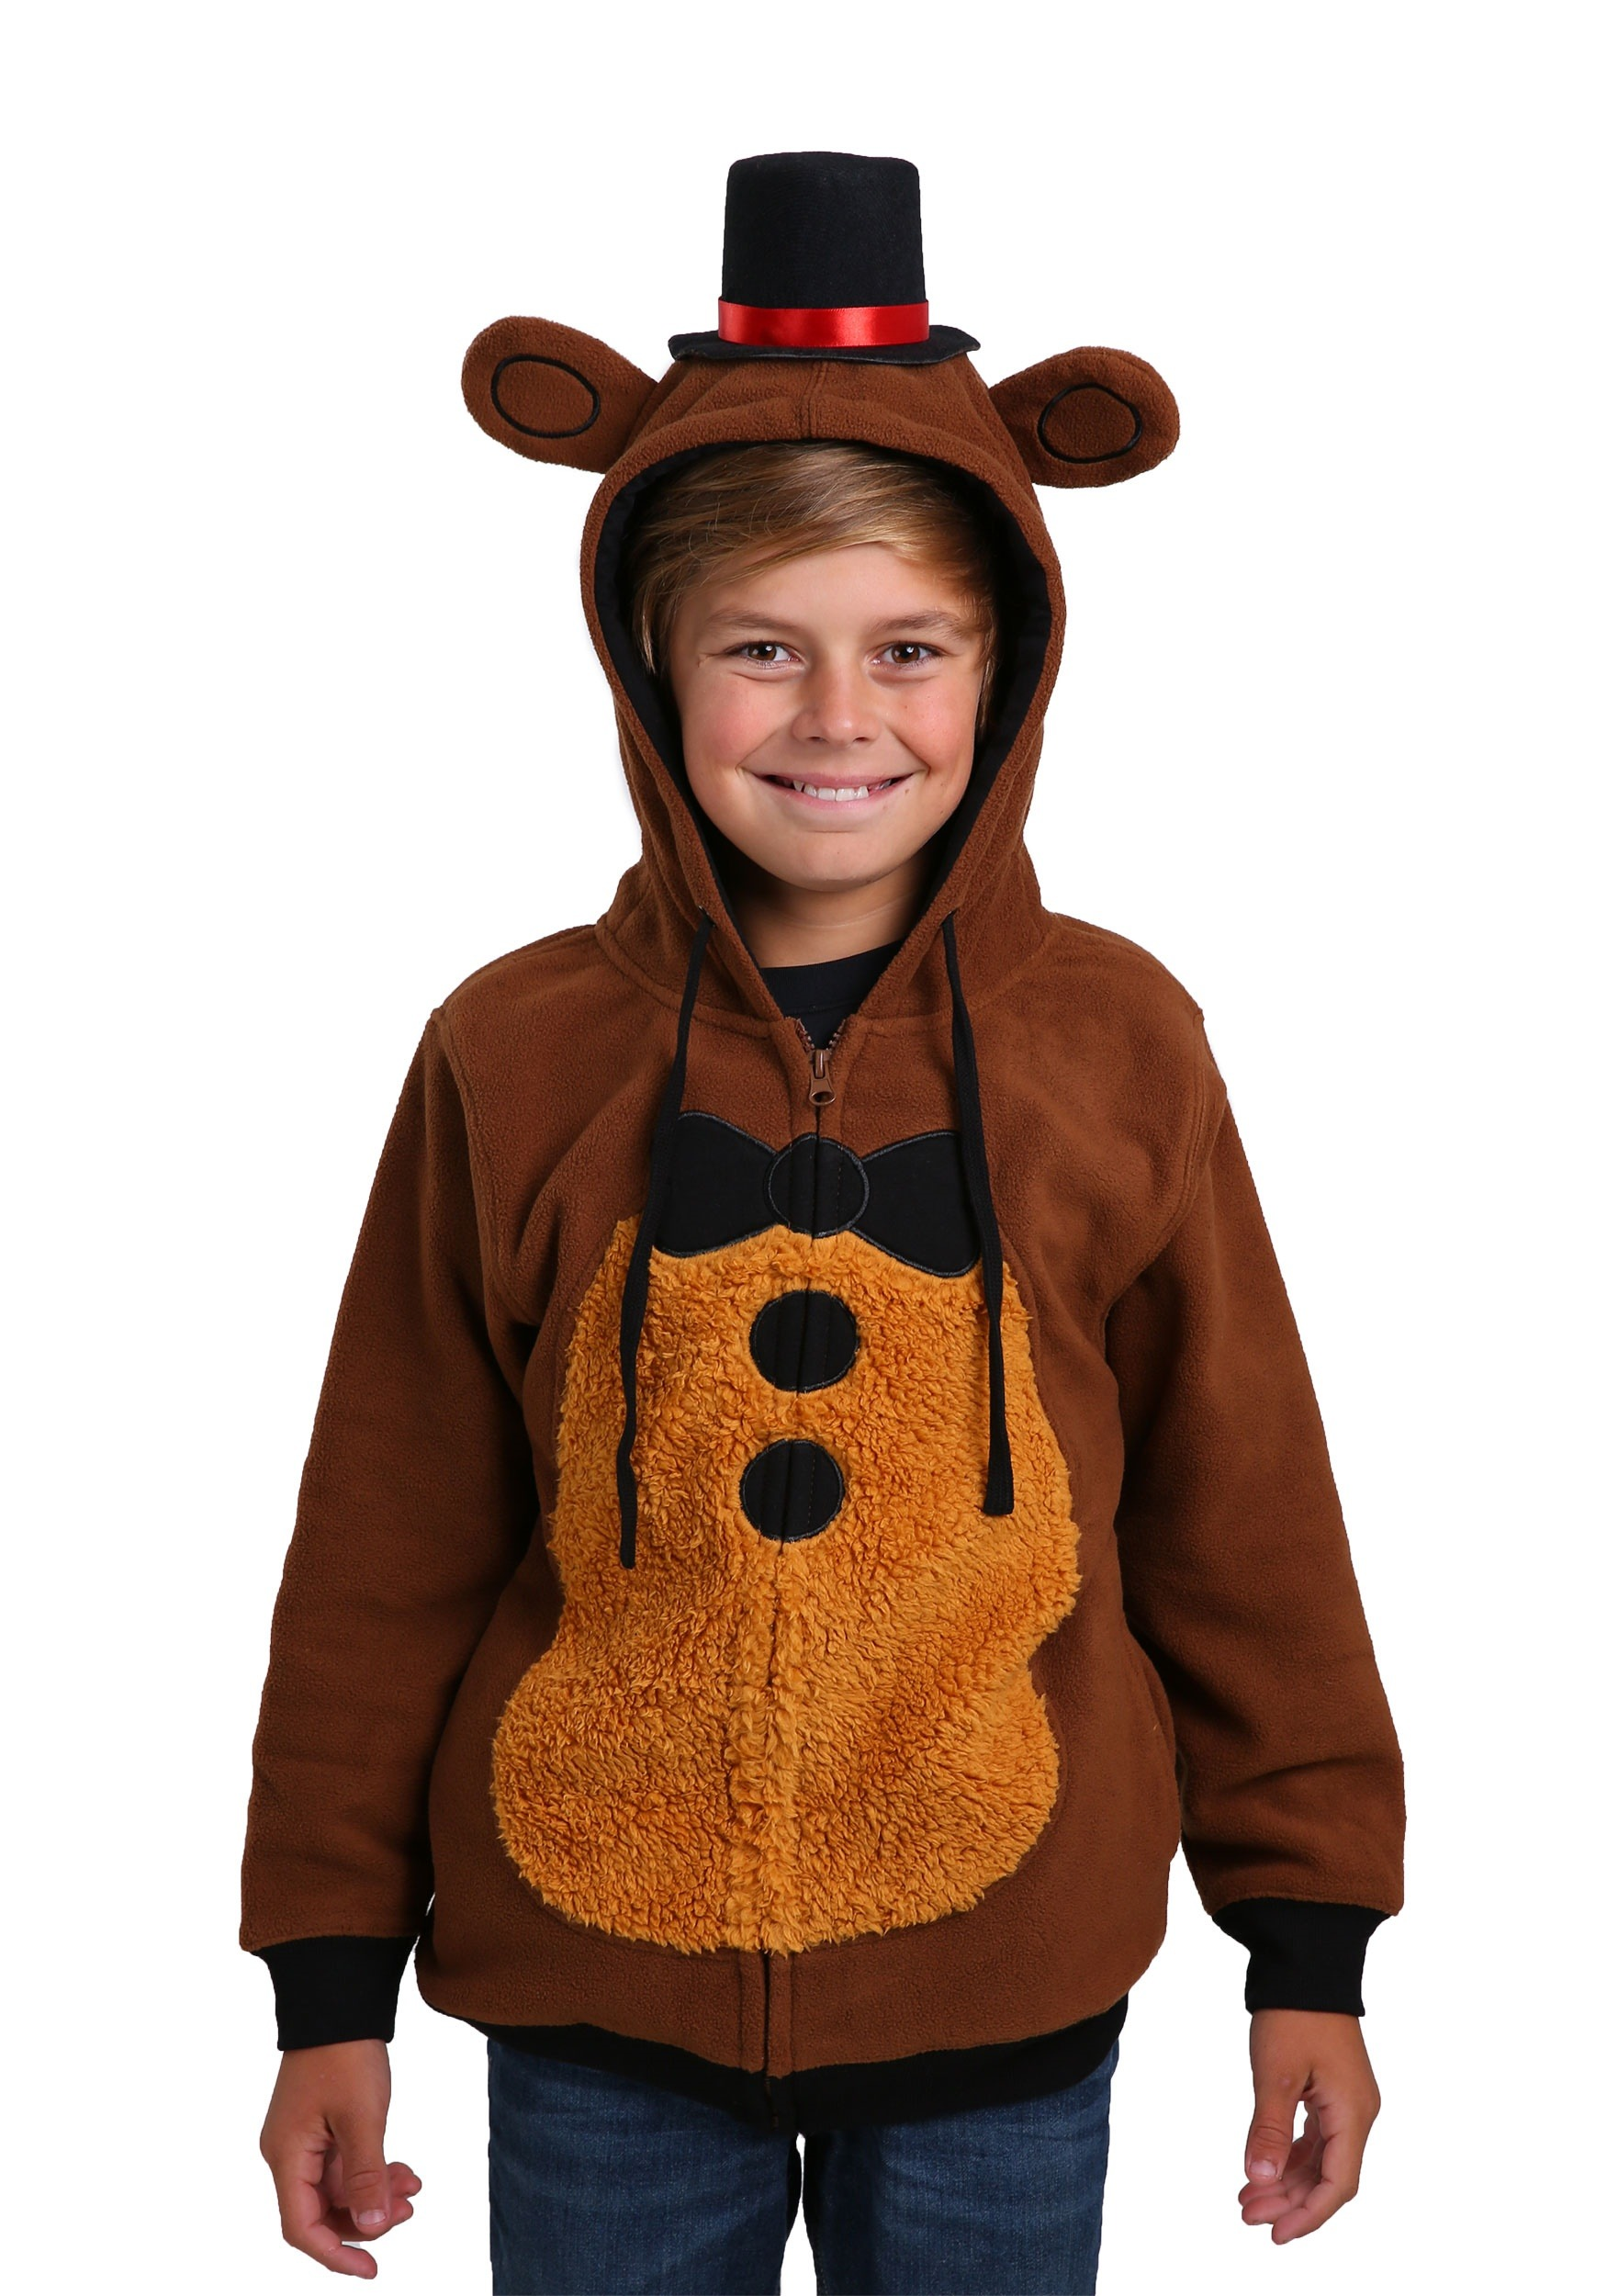 Dress up five nights at freedys - Five Nights At Freddys Kids Costume Hoodie